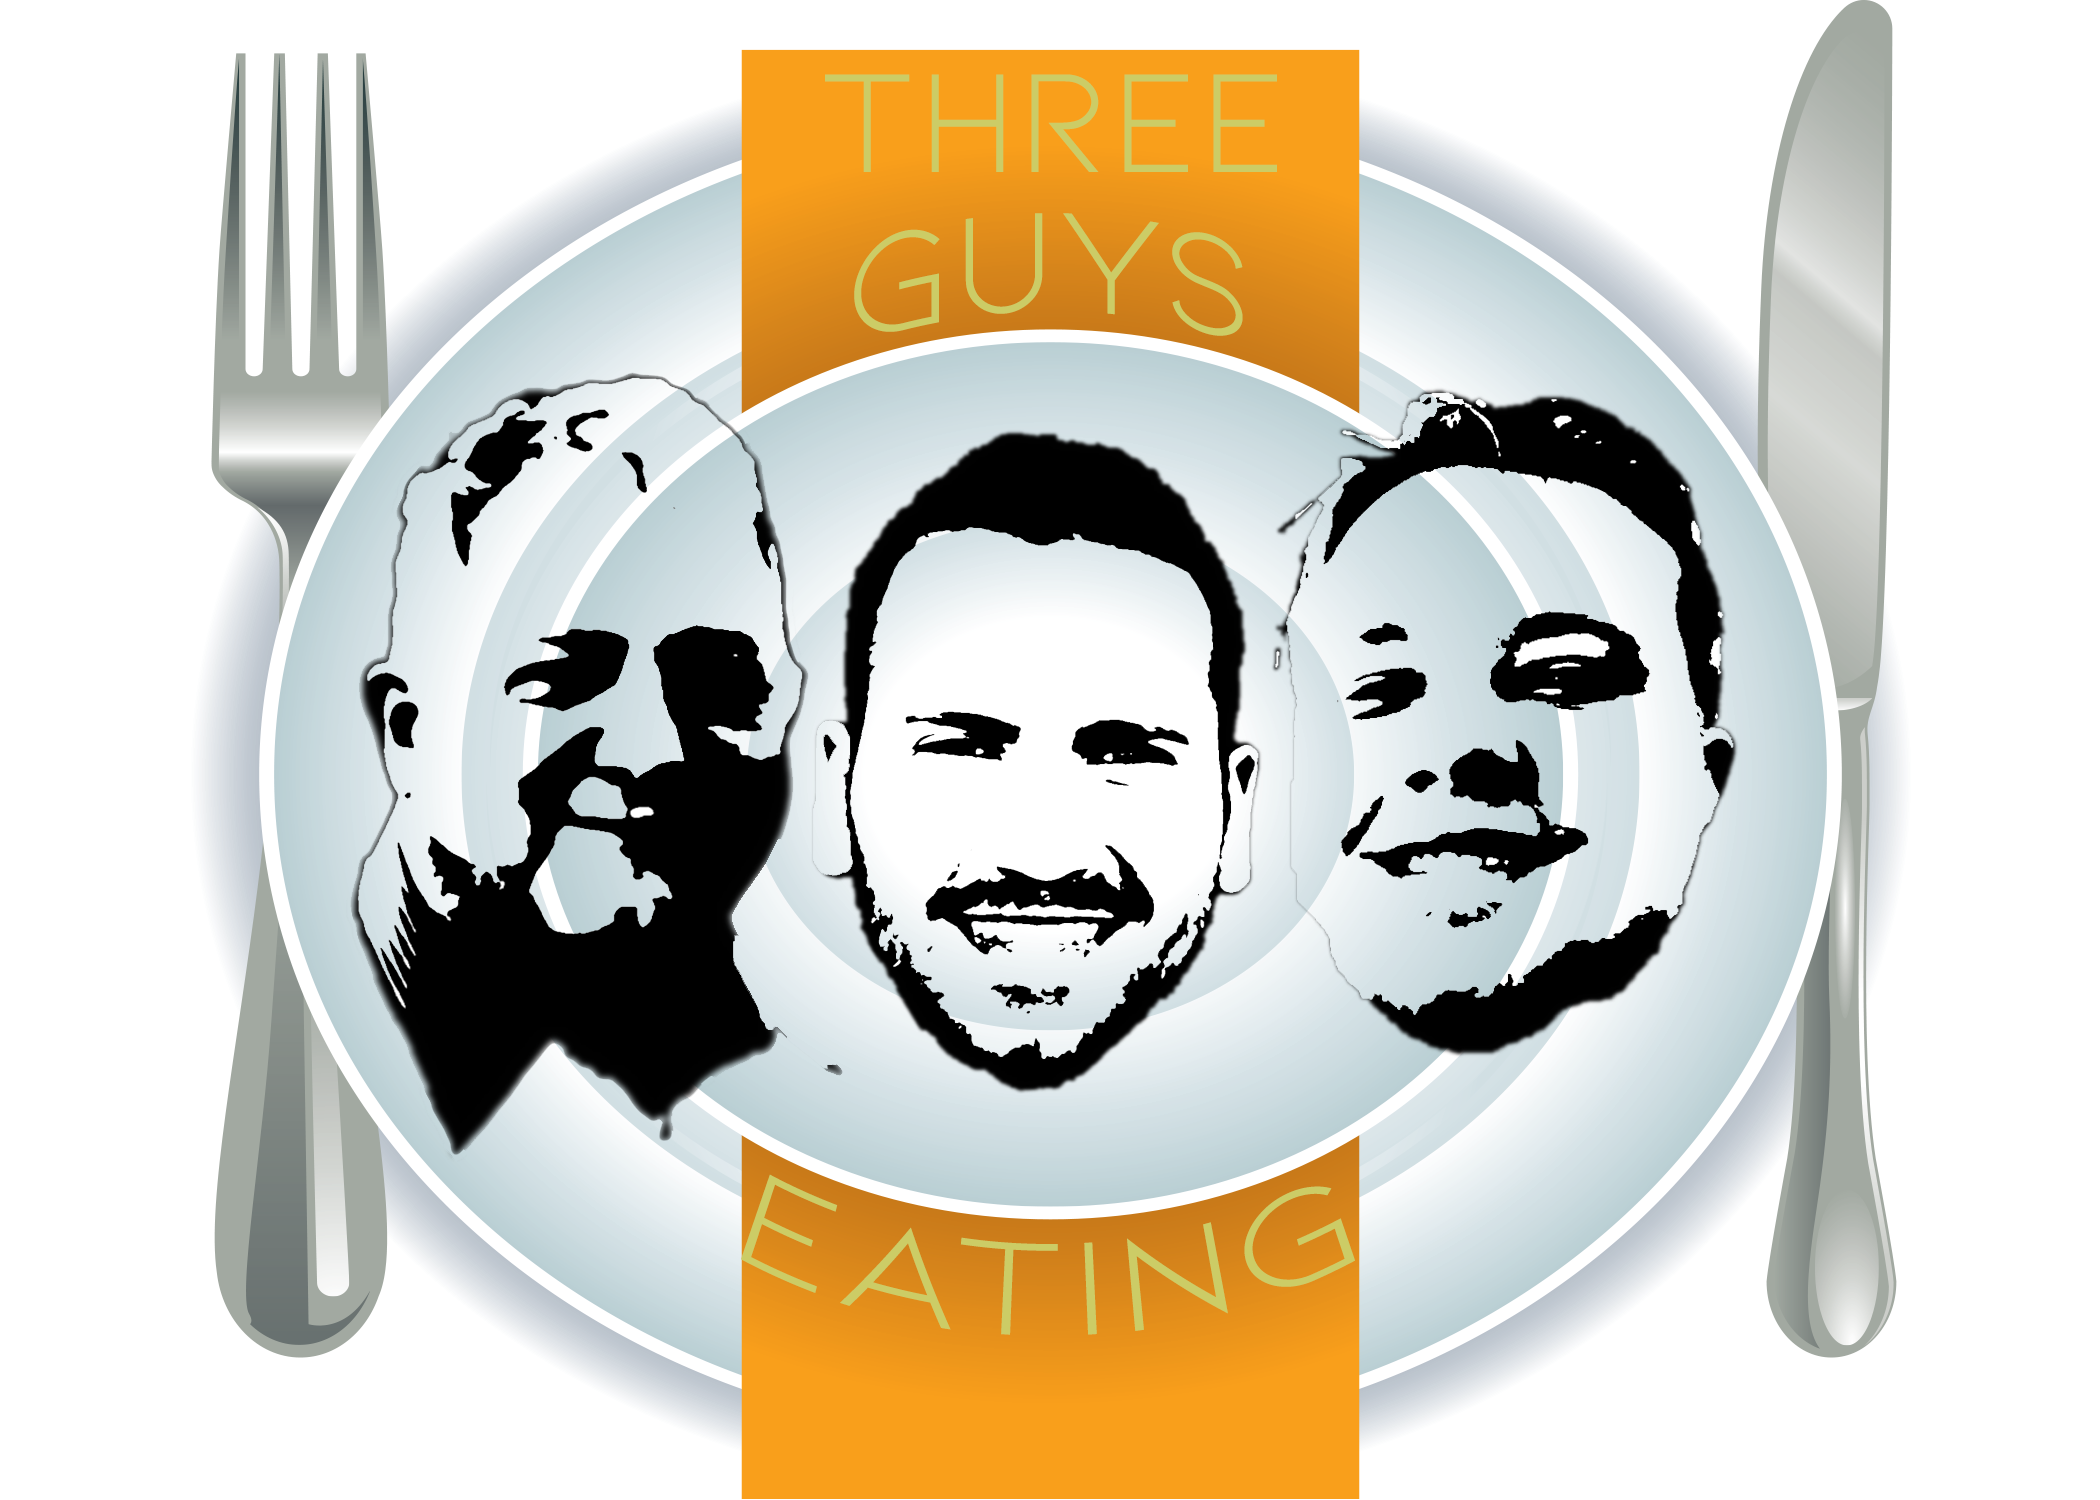 Three Guys Eating Week two: The Burger House – A cure for the burger blues